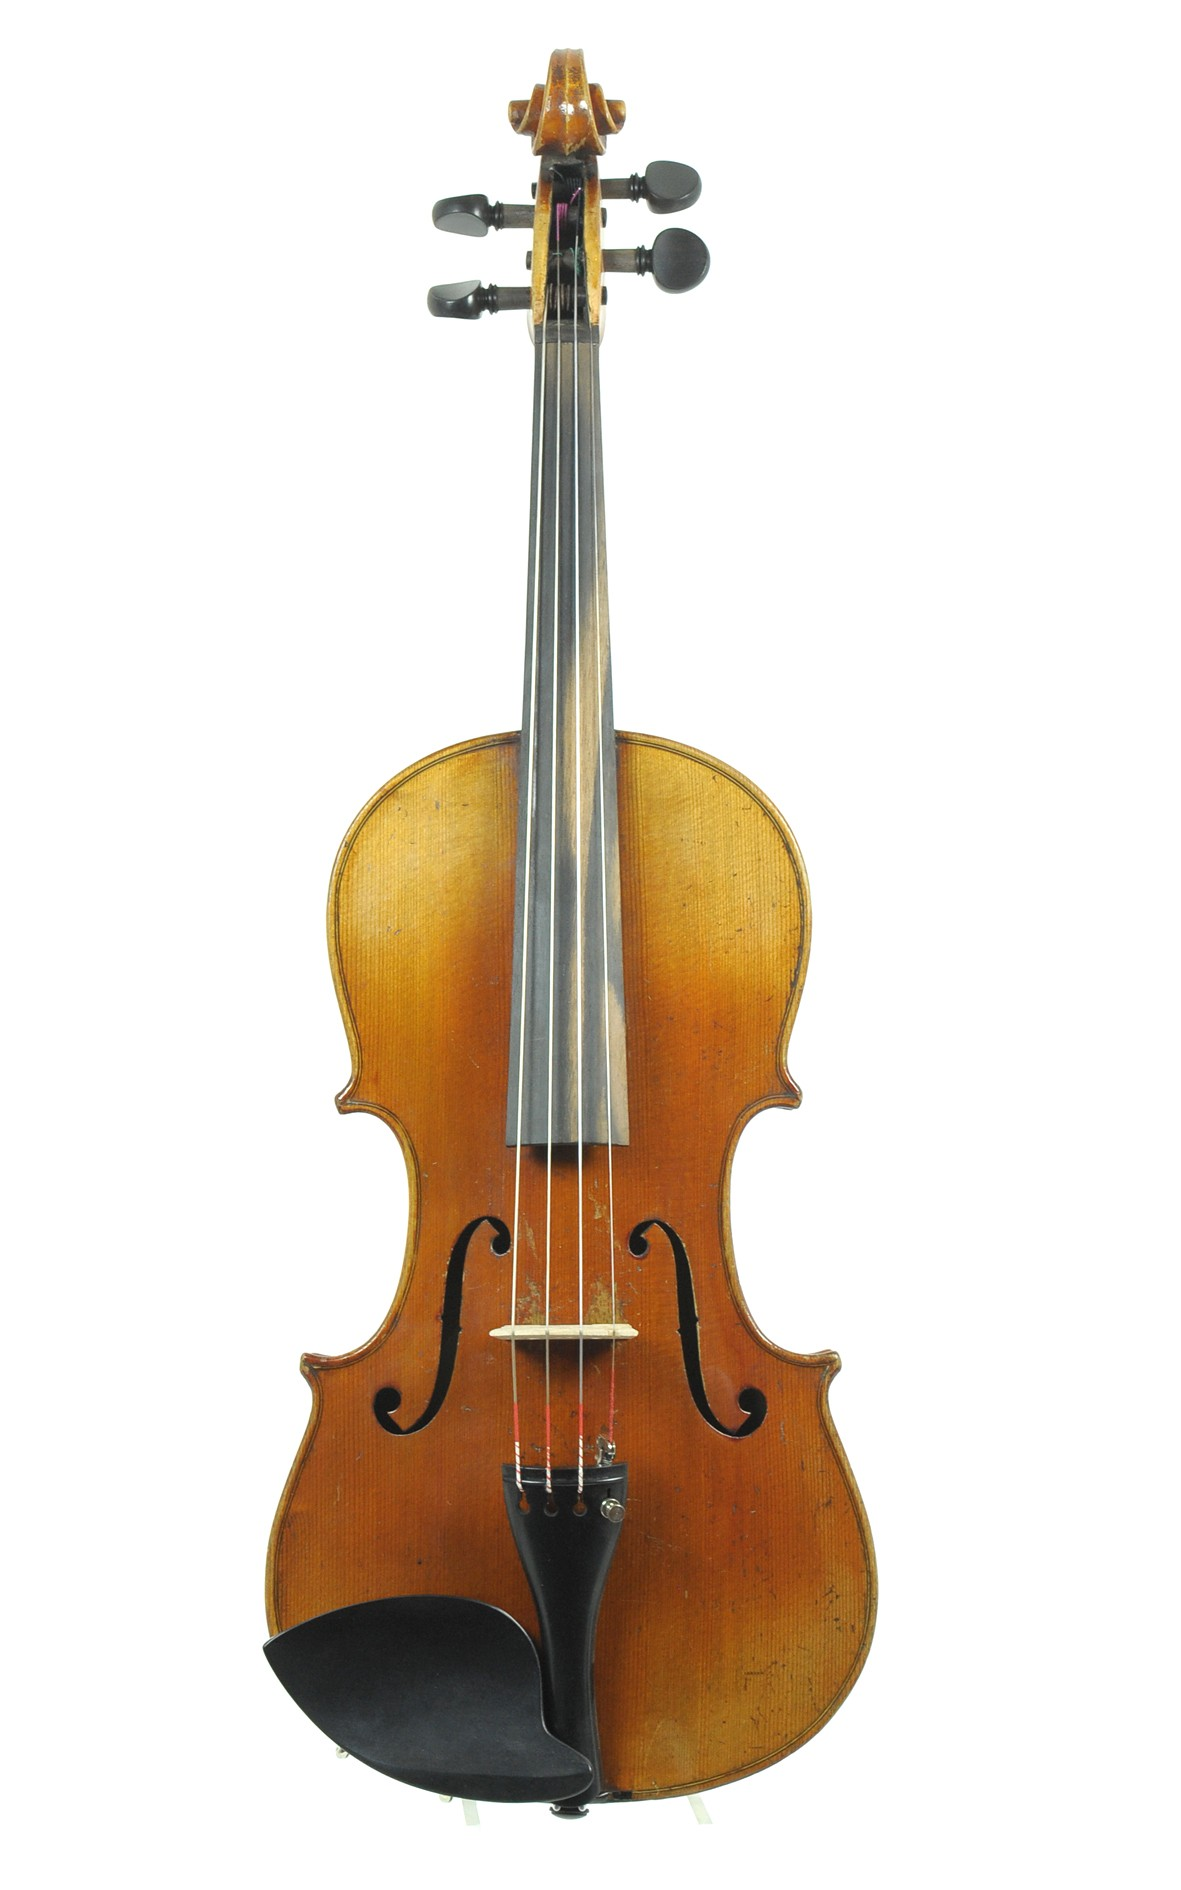 Violin from Dresden, Saxony, approx. 1920 - top view